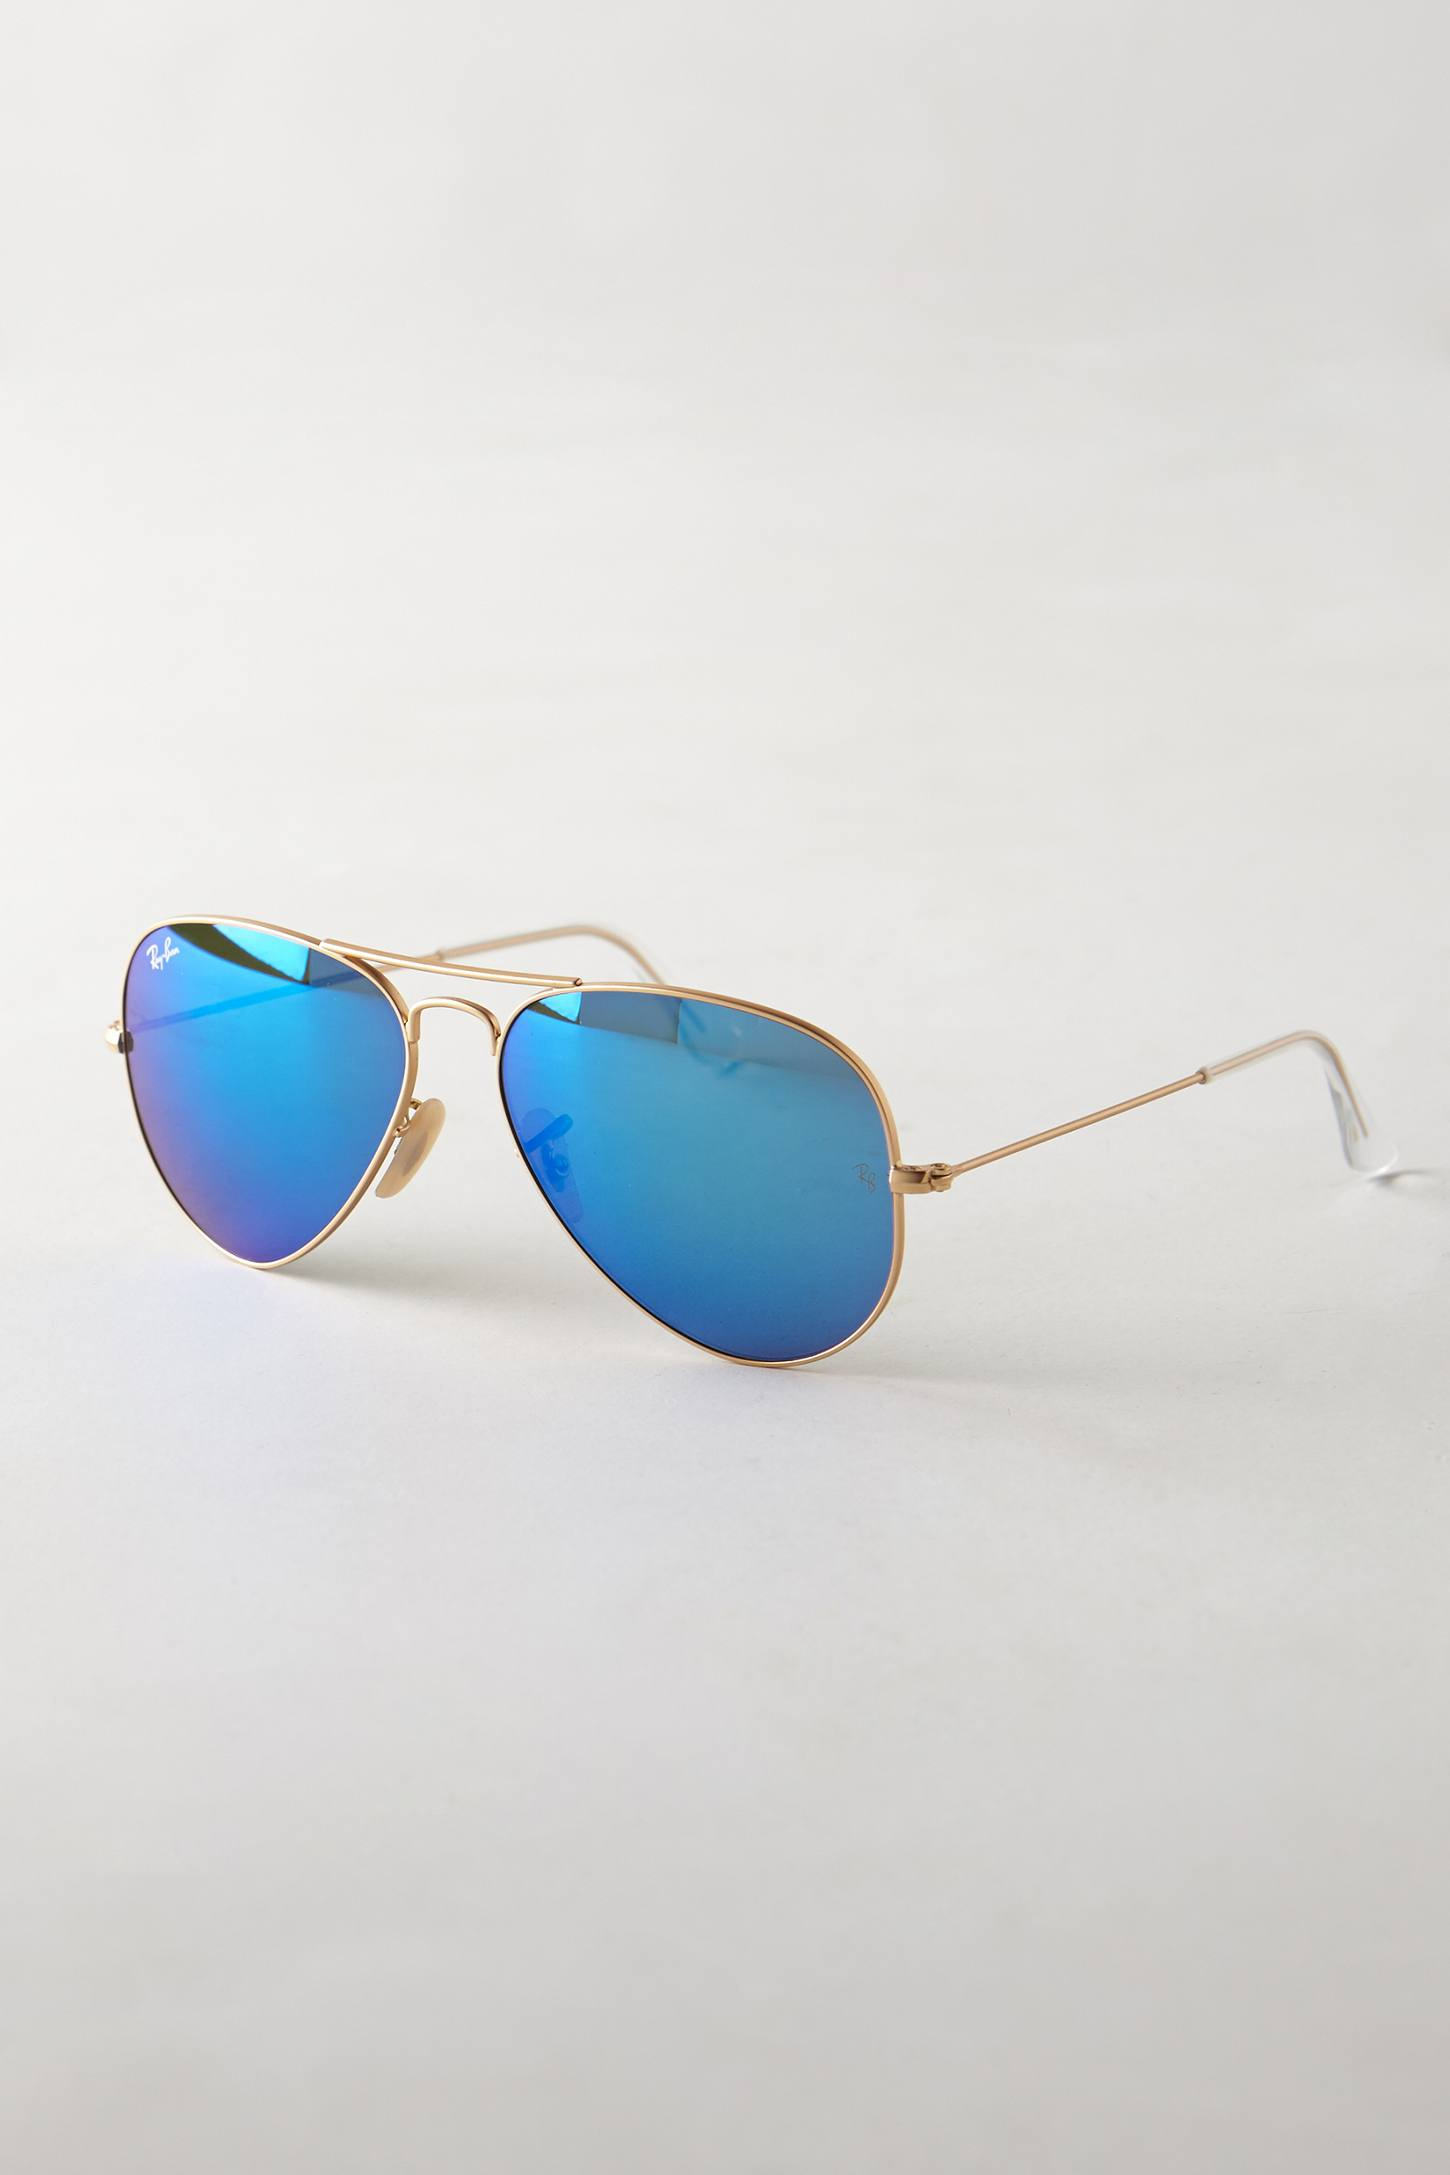 Ray Bans Blue Flash   Louisiana Bucket Brigade 2e860fc011